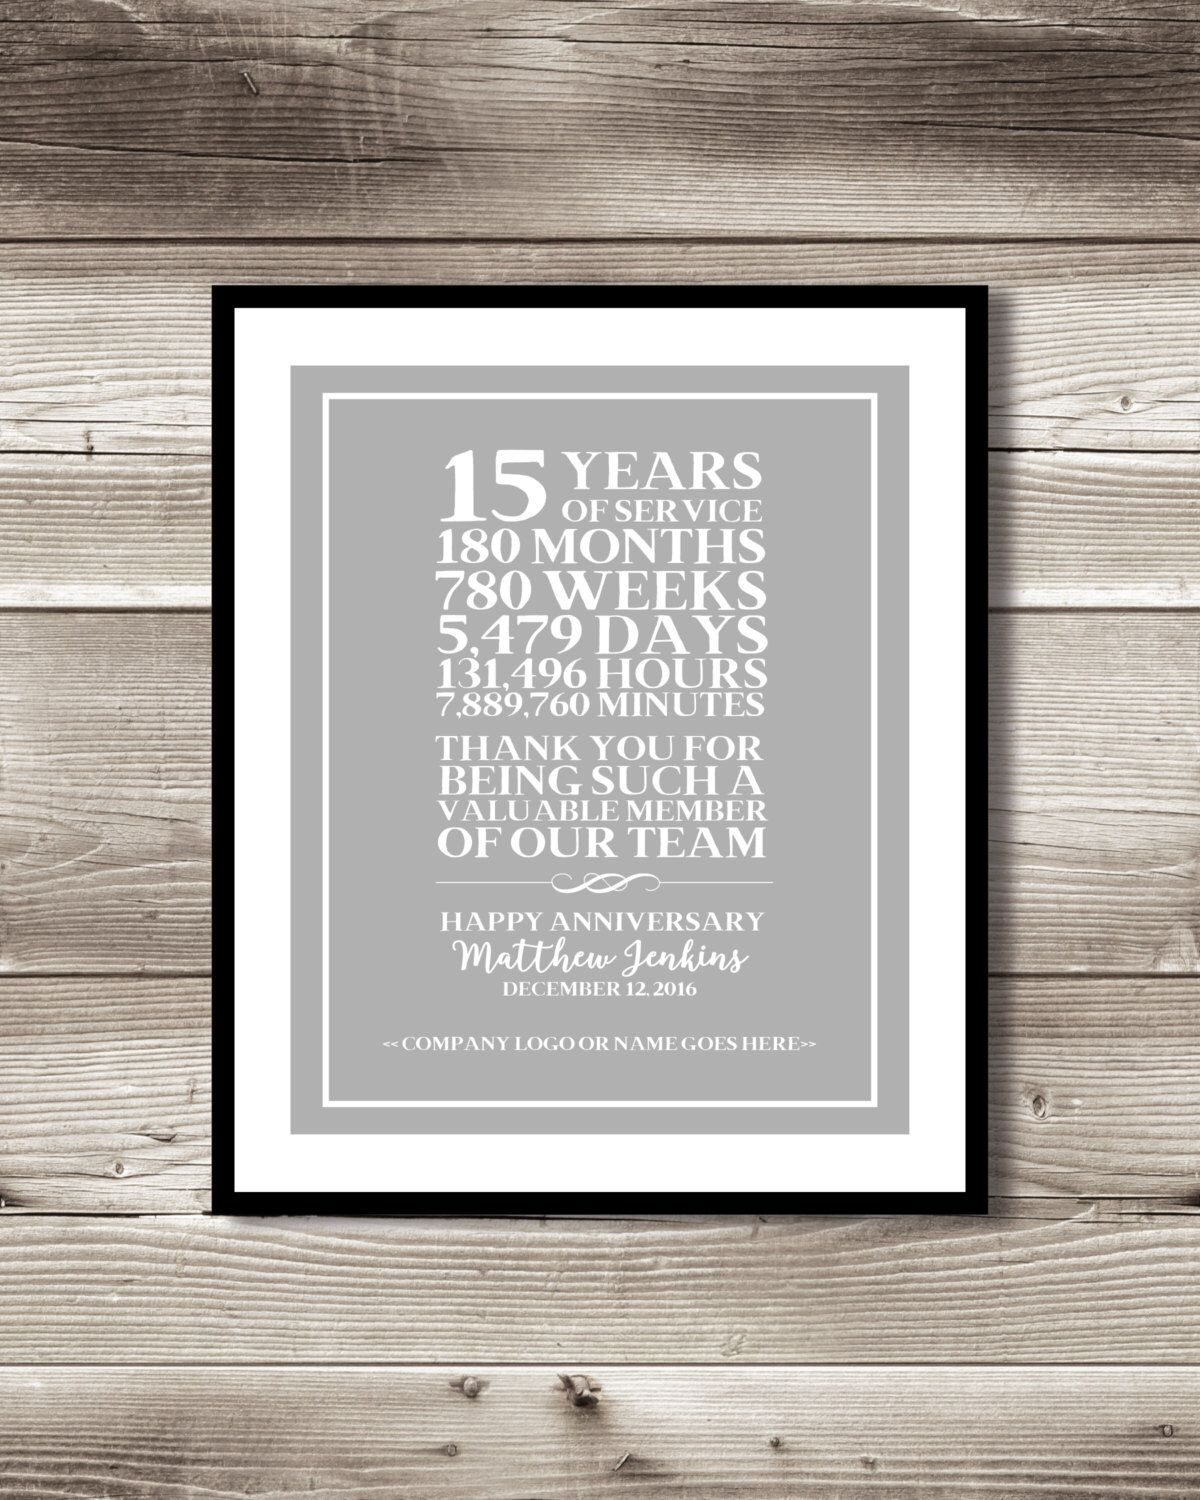 15 Year Work Anniversary Print Customizable Thank You Gift Appreciation Employee Recognition 15 Years Of Service Gift Idea Work Anniversary 25 Year Anniversary 20 Year Anniversary Gifts